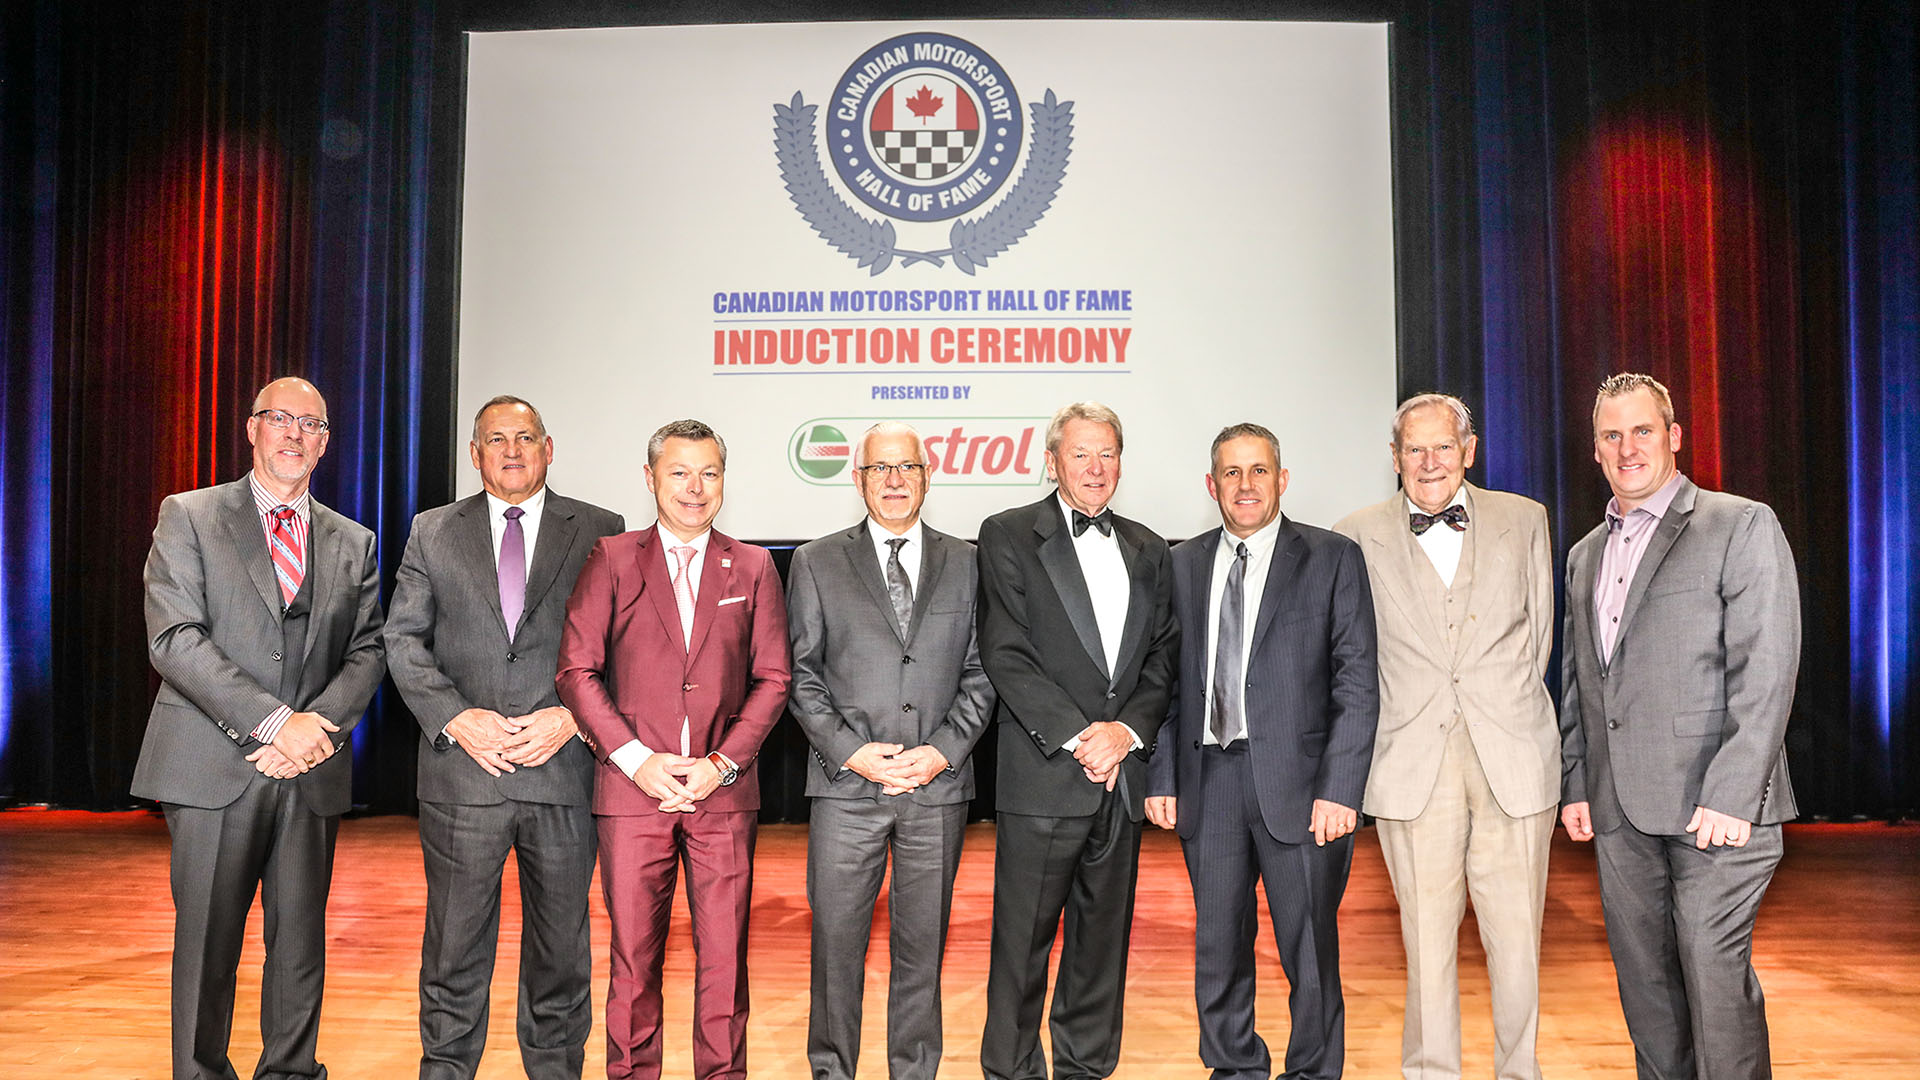 See the Inductees for the Canadian Motorsport Hall of Fame